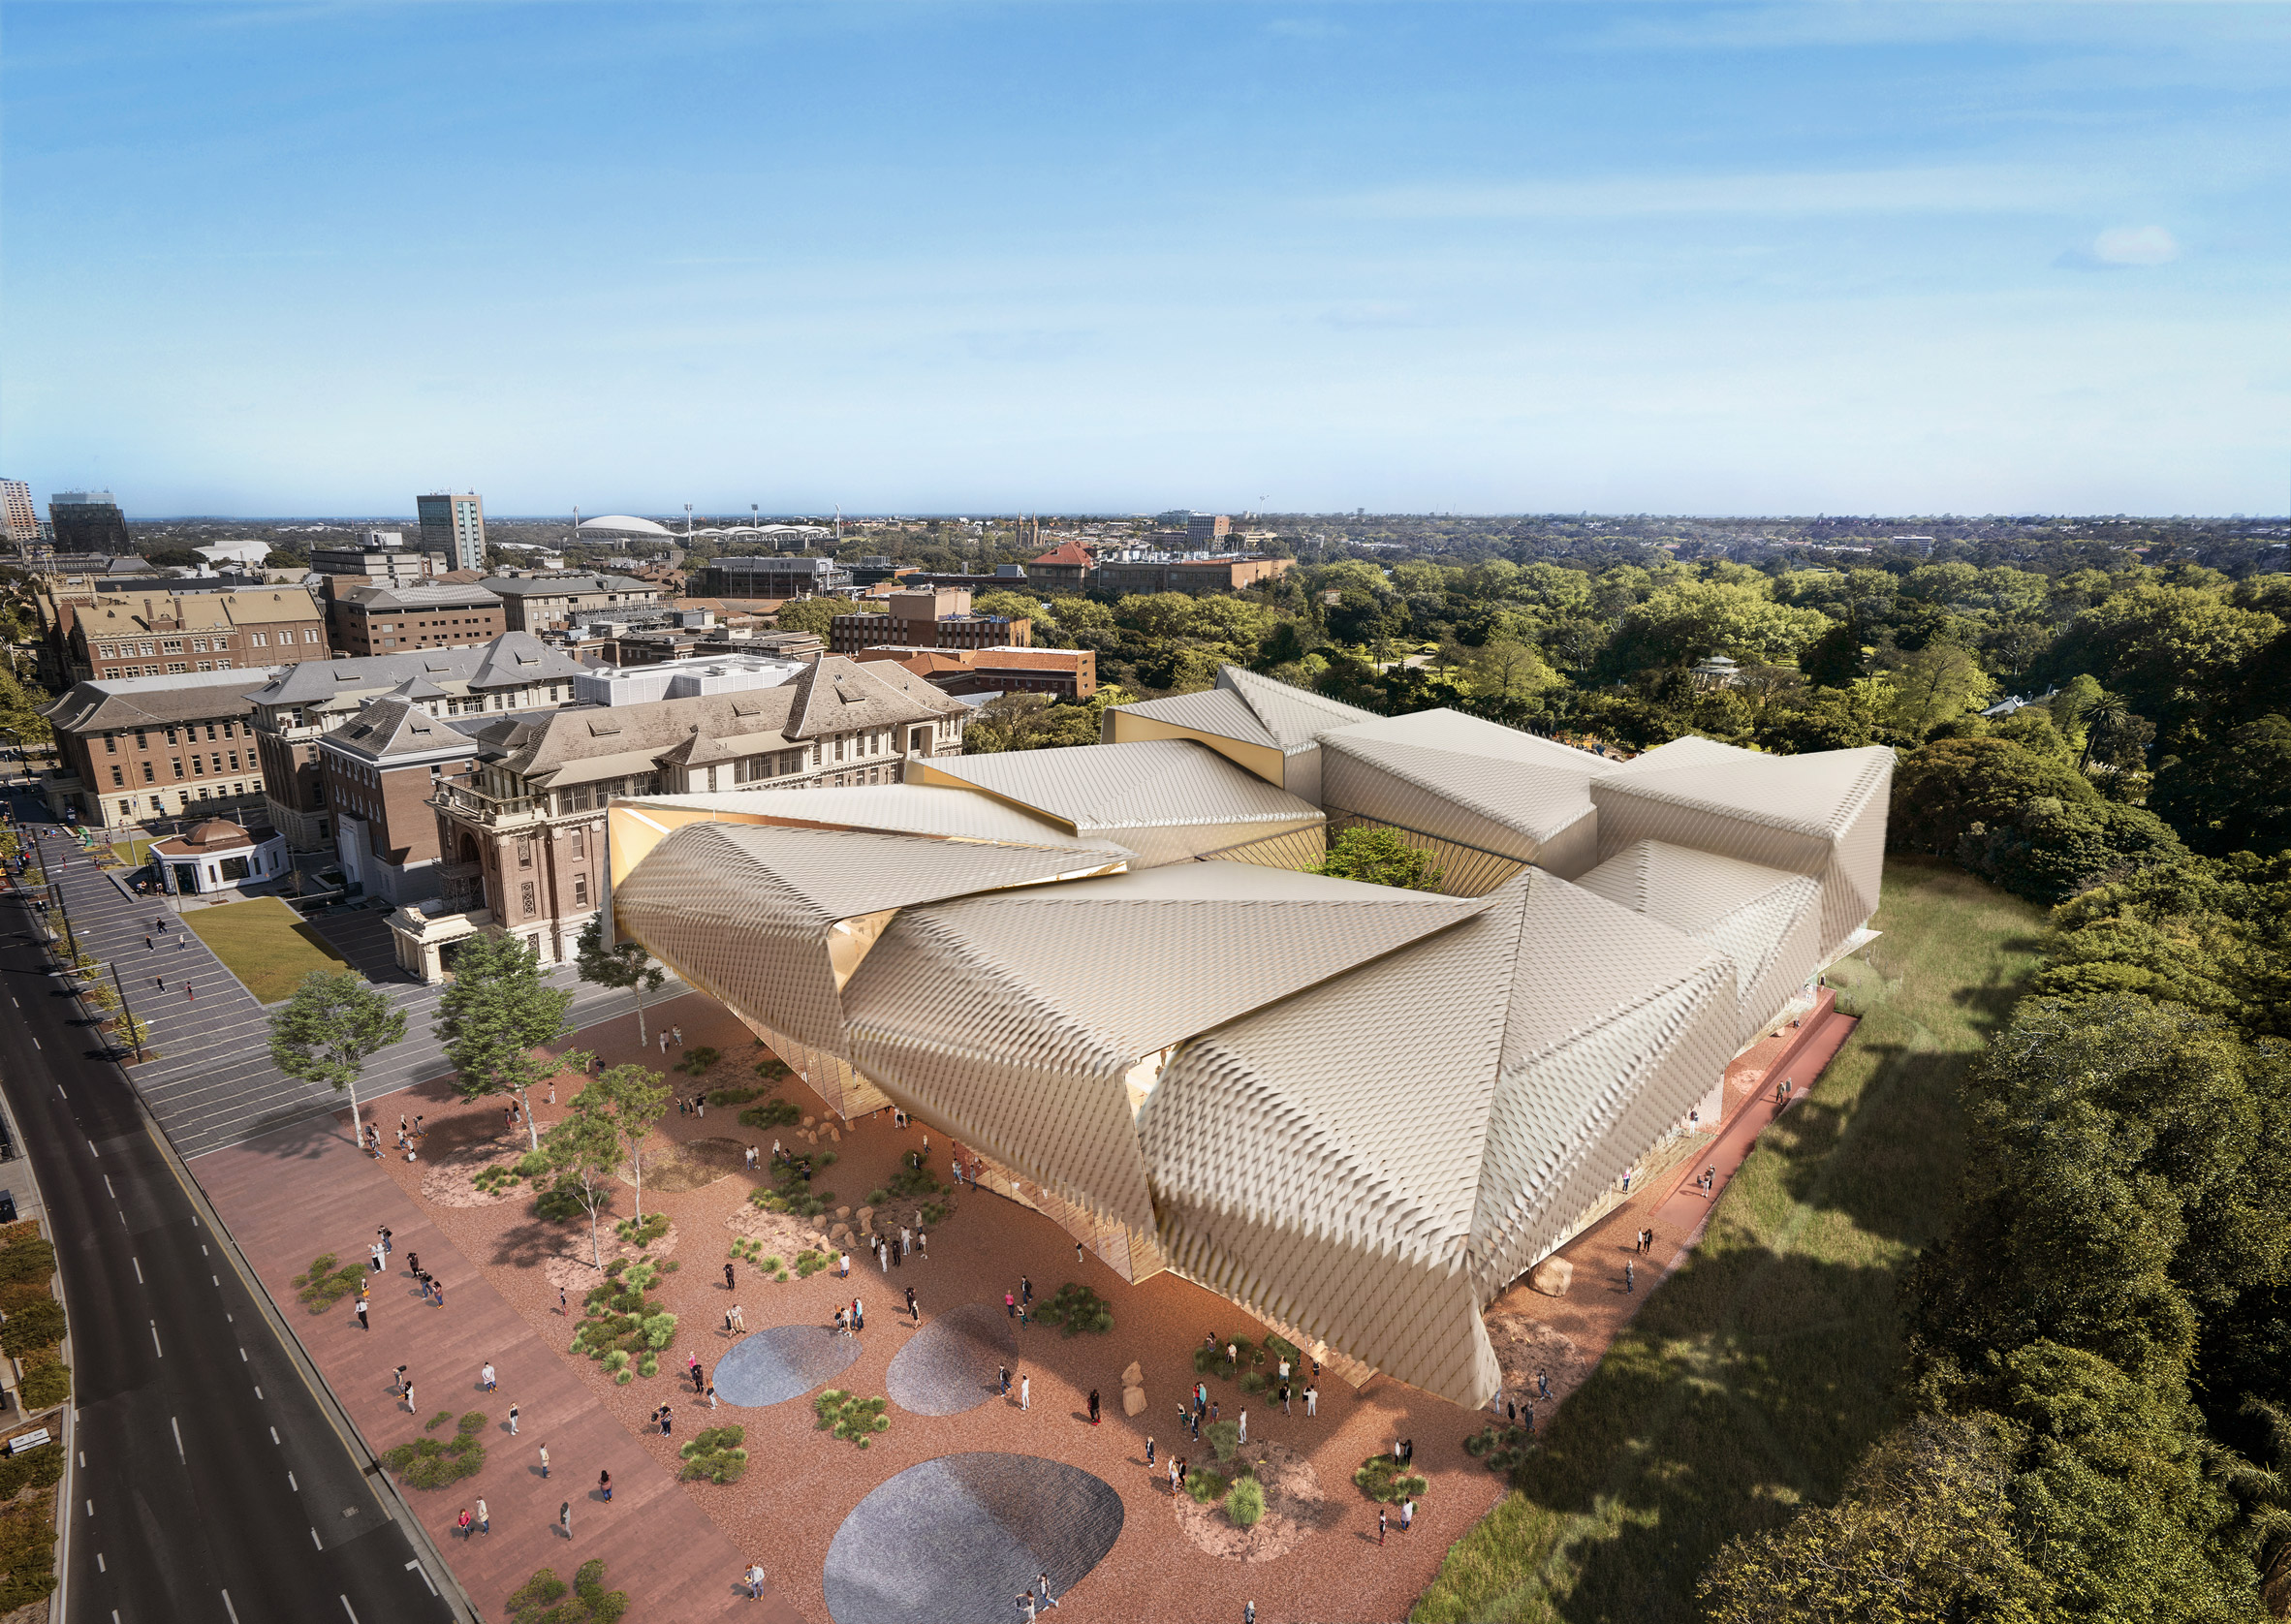 An aerial visual of a museum